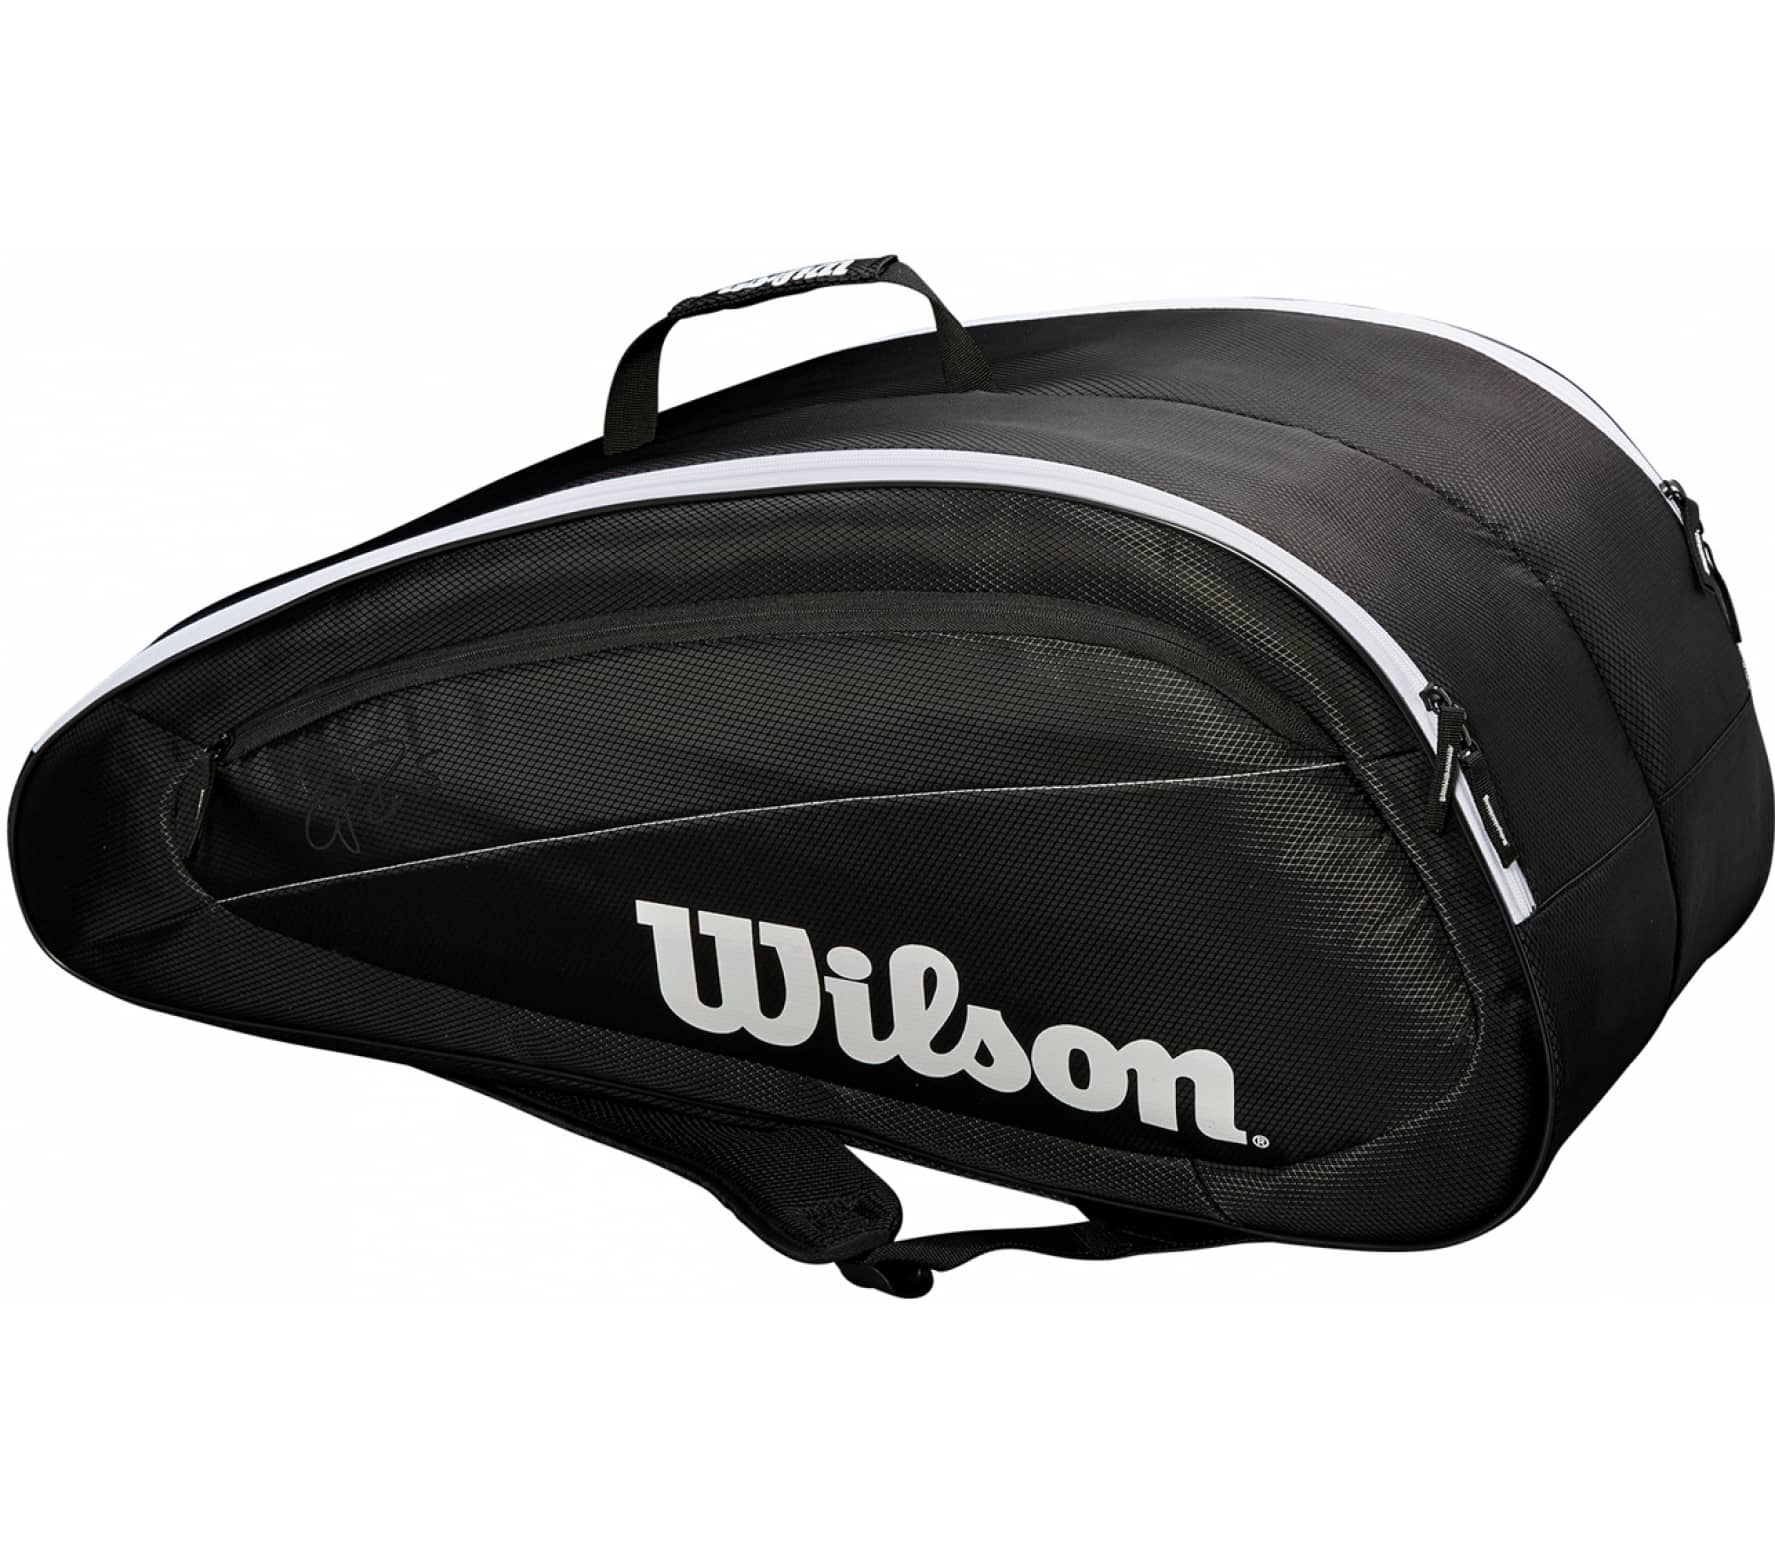 Wilson - Fed Team 12 Pack men's tennis bag (black/white)